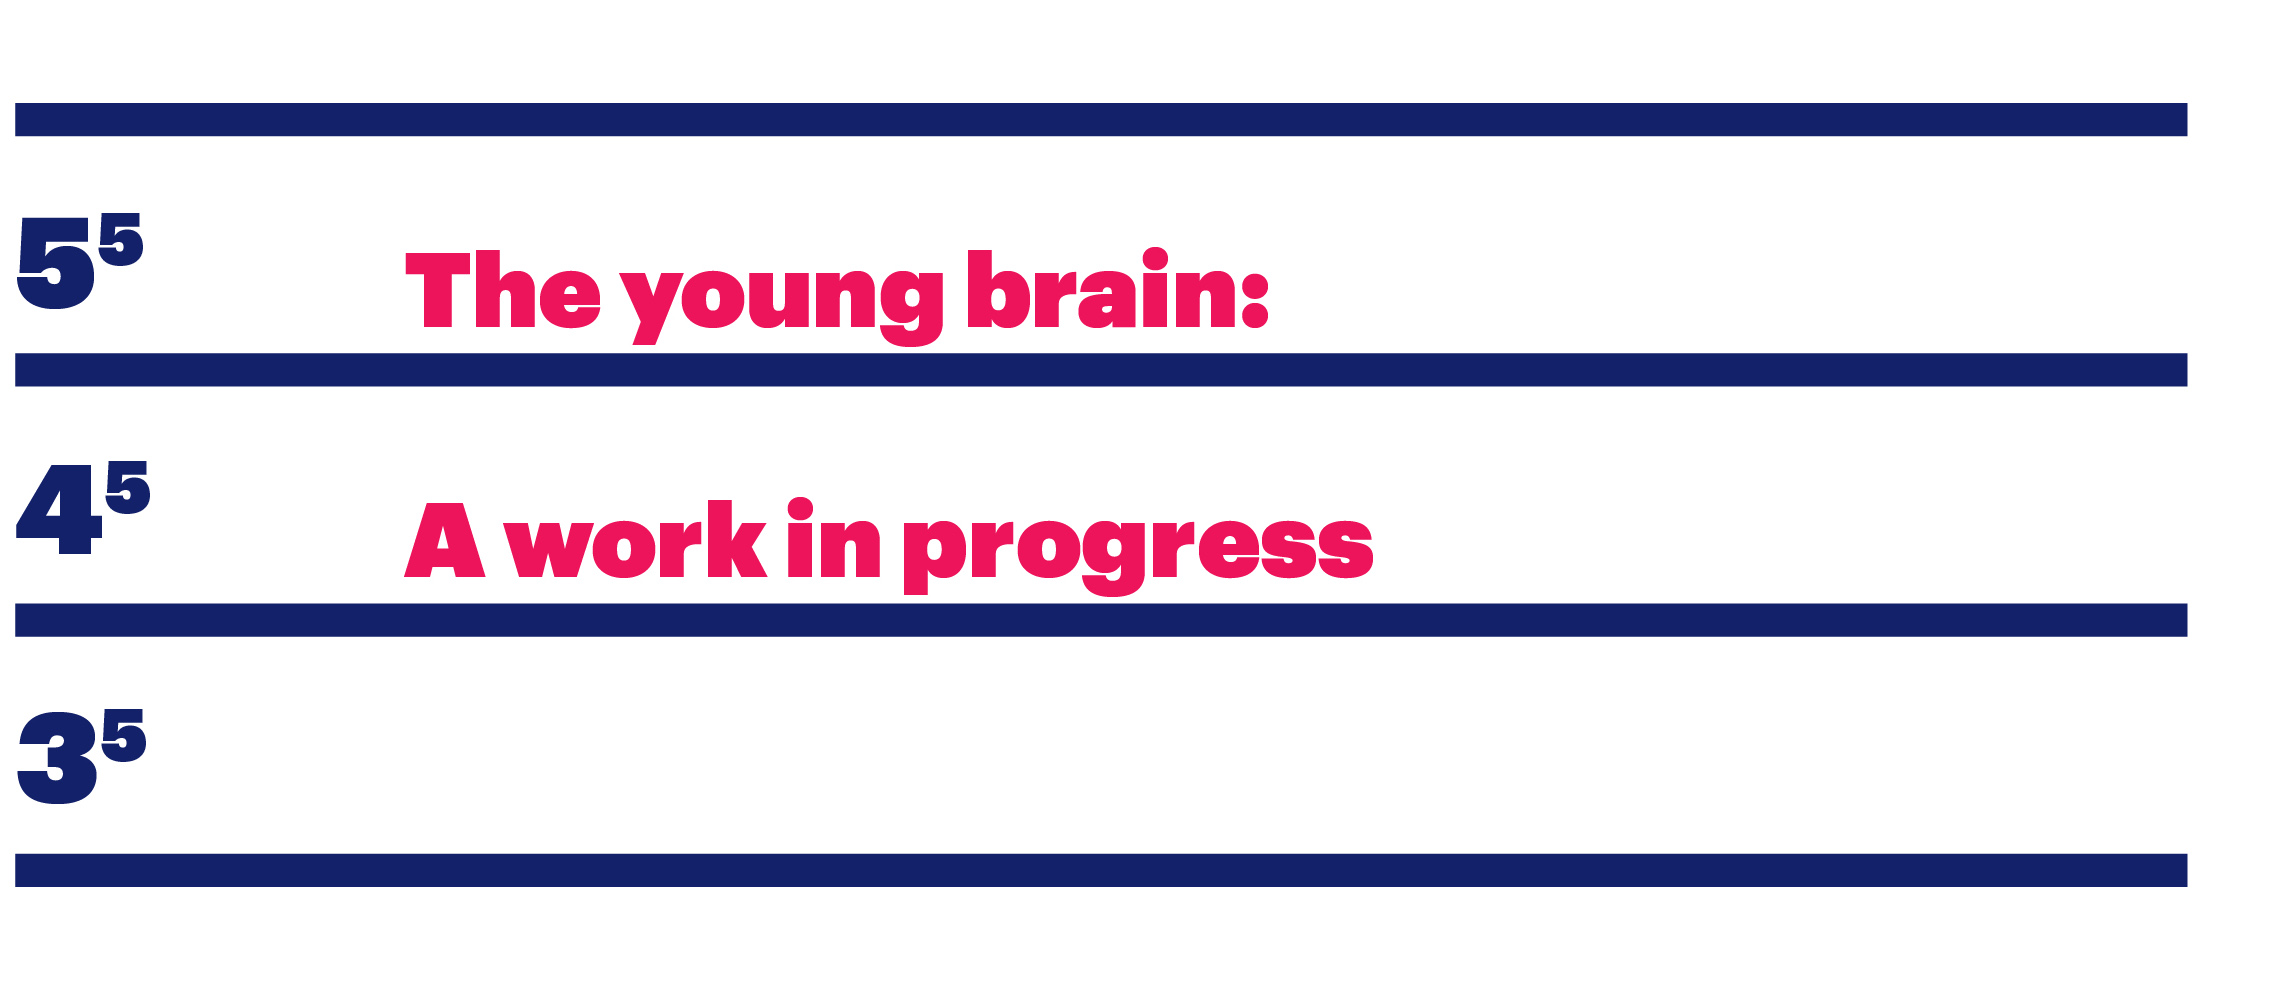 Section title: The young brain: A work in progress